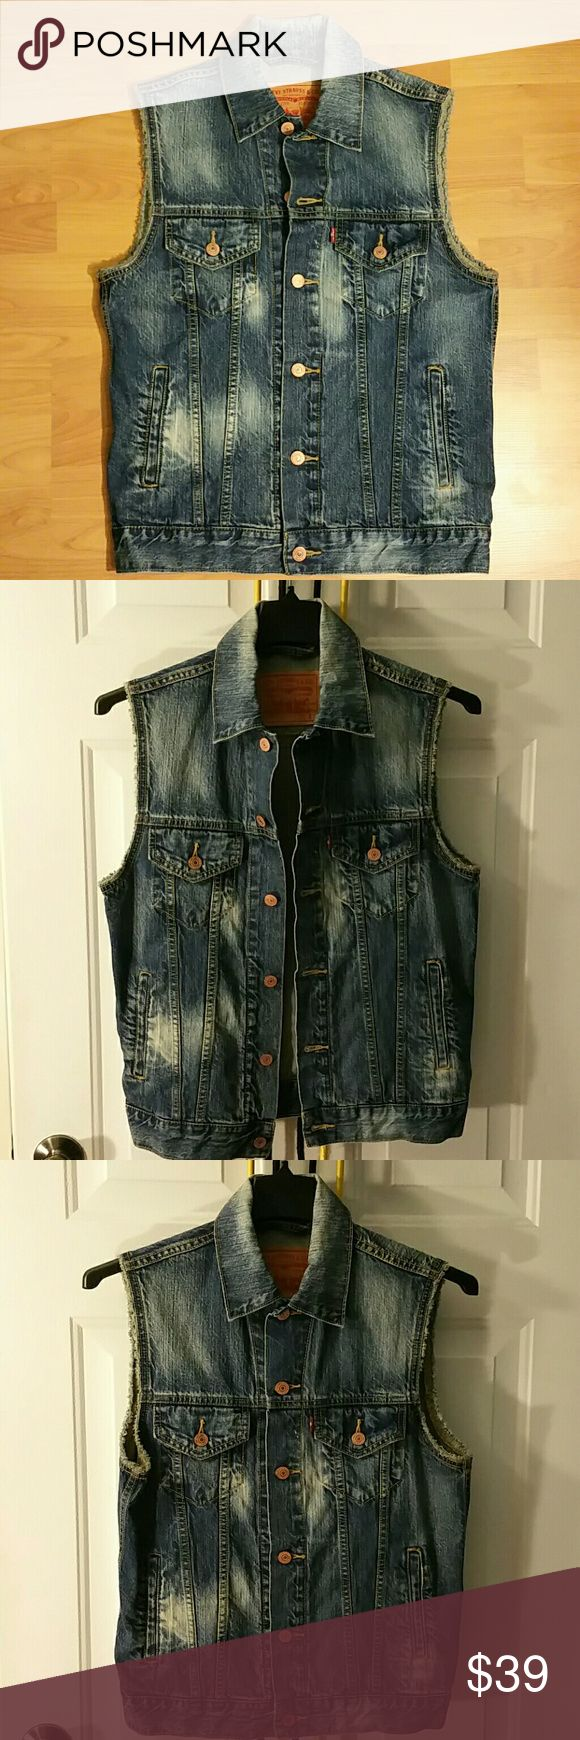 Mens Levis denim jacket sleeveless Like new pristine condition. Too small for me and was too late to return it. Size small. Levi's Jackets & Coats